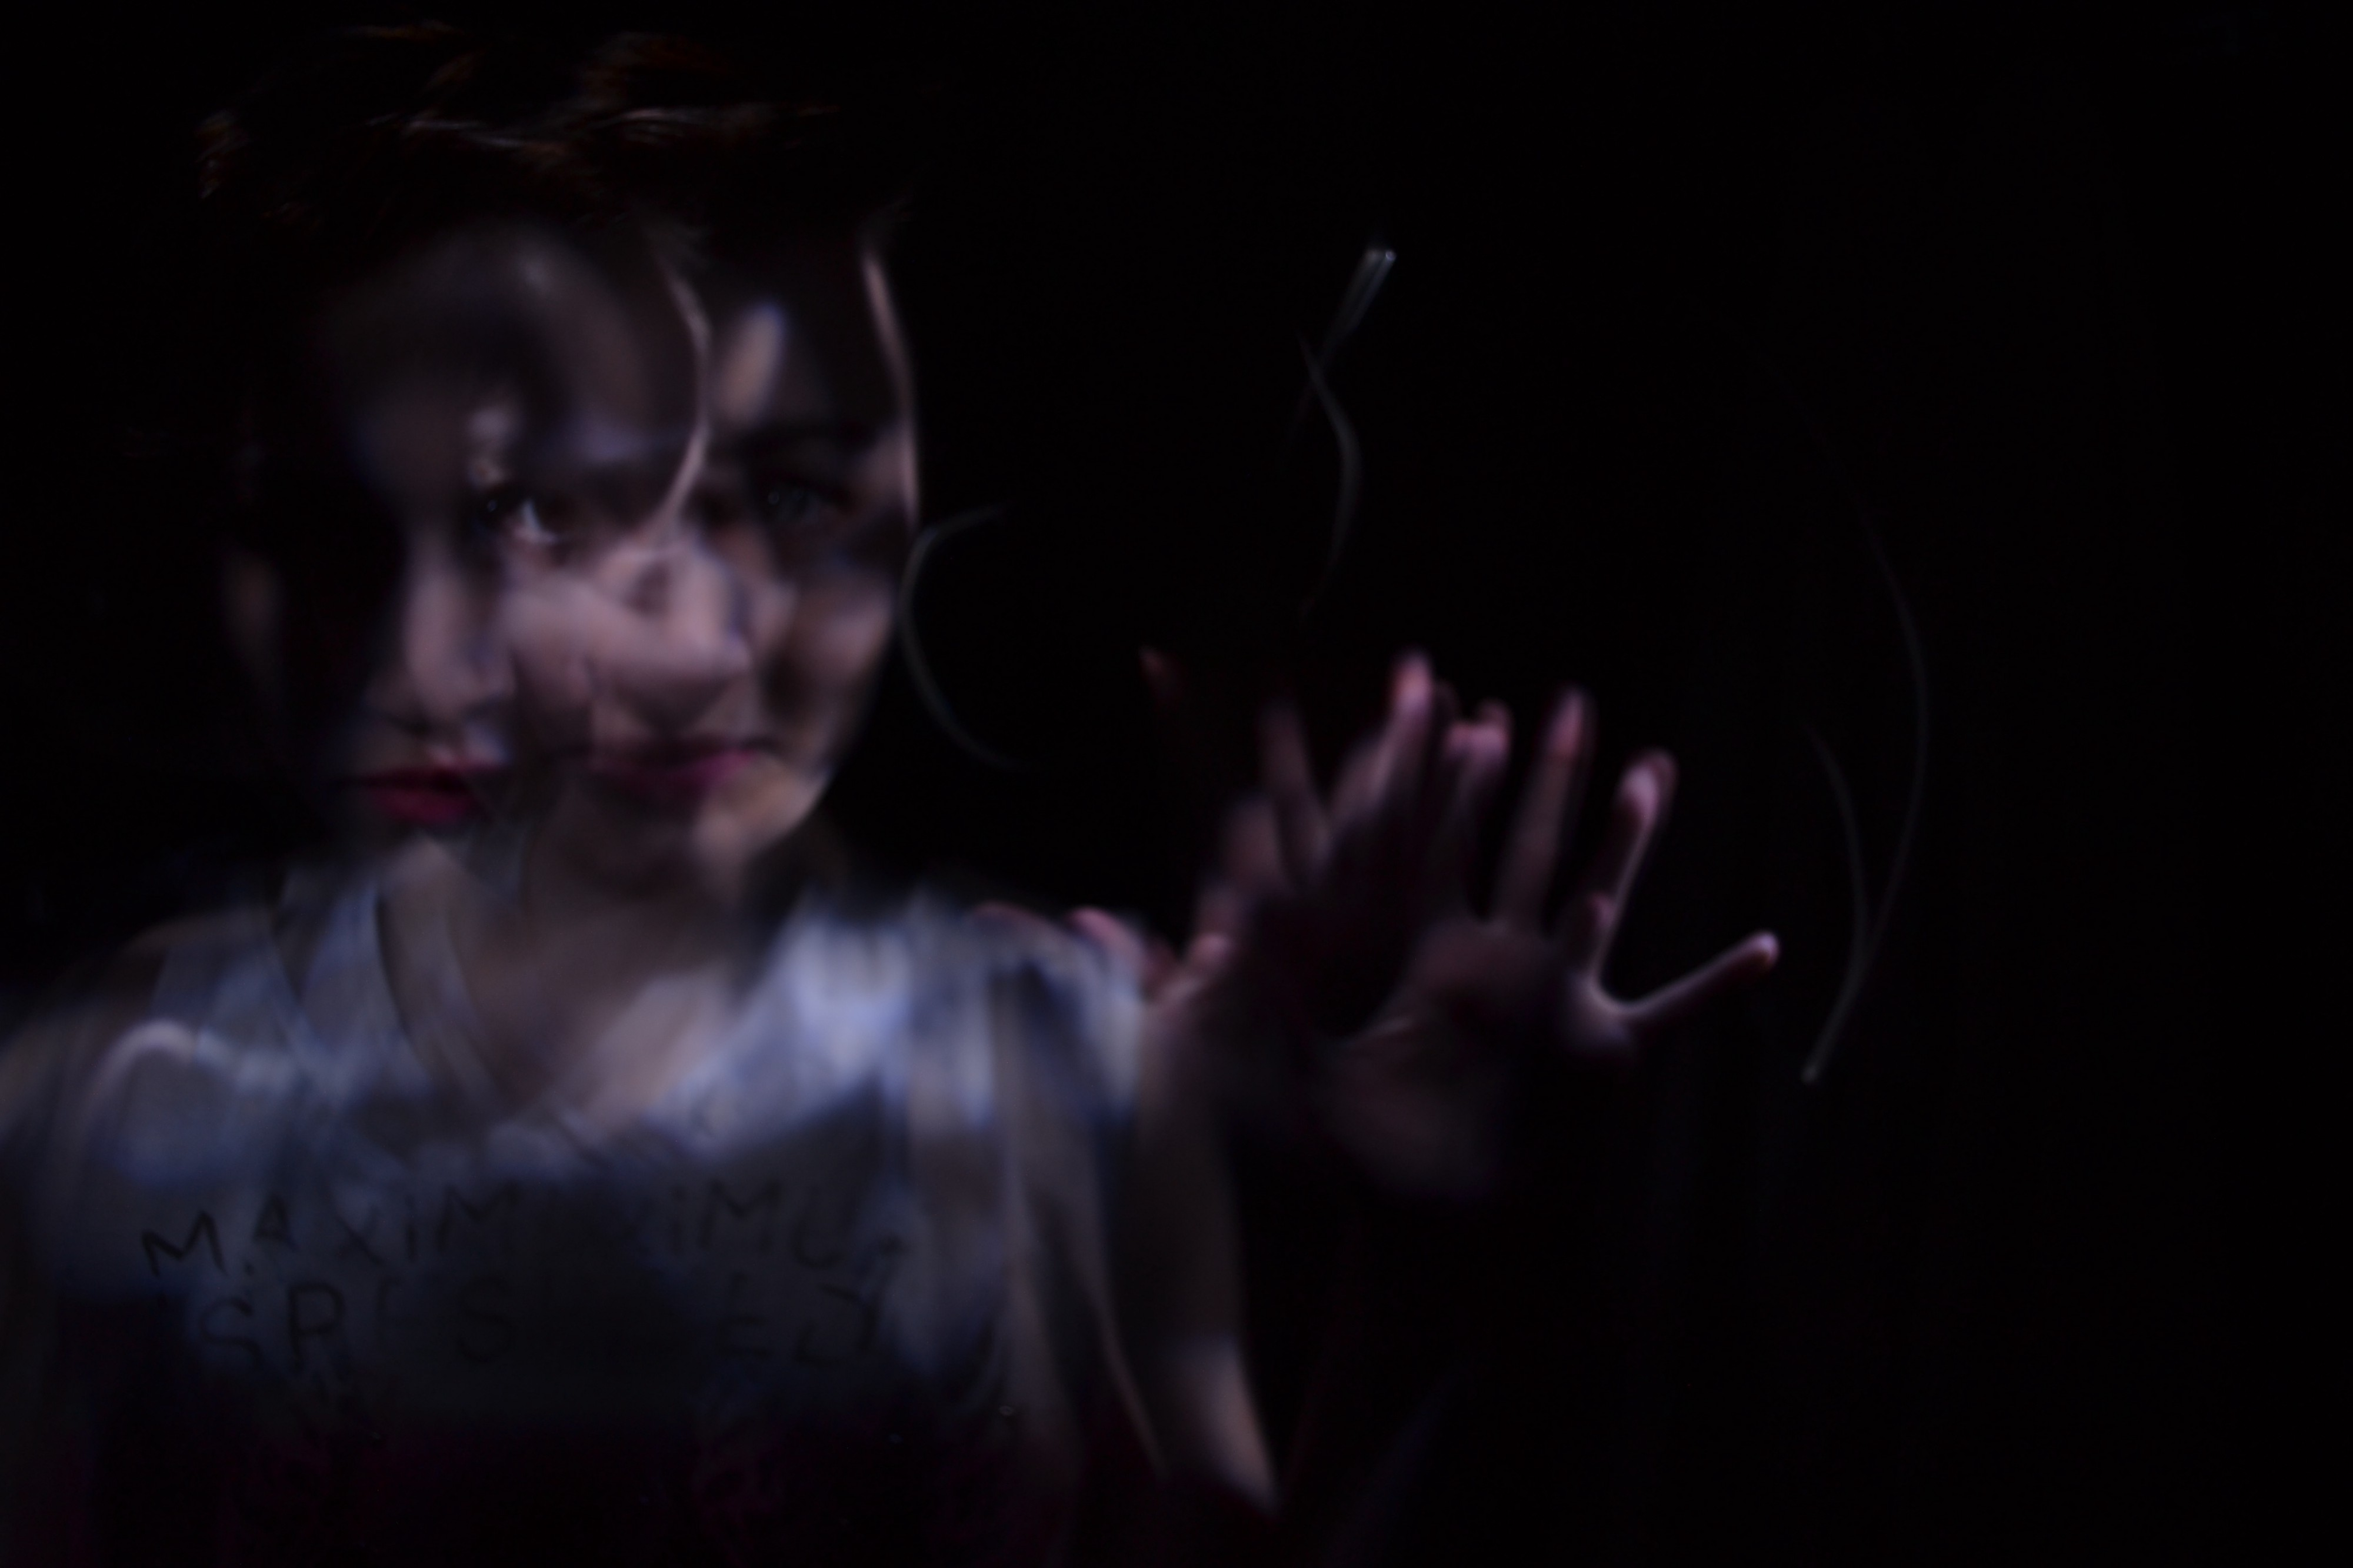 A darker image of a woman, where the woman is not in focus, and stretching out her hands, to go with the story about a man in a motel, and something under the bed kept him awake.